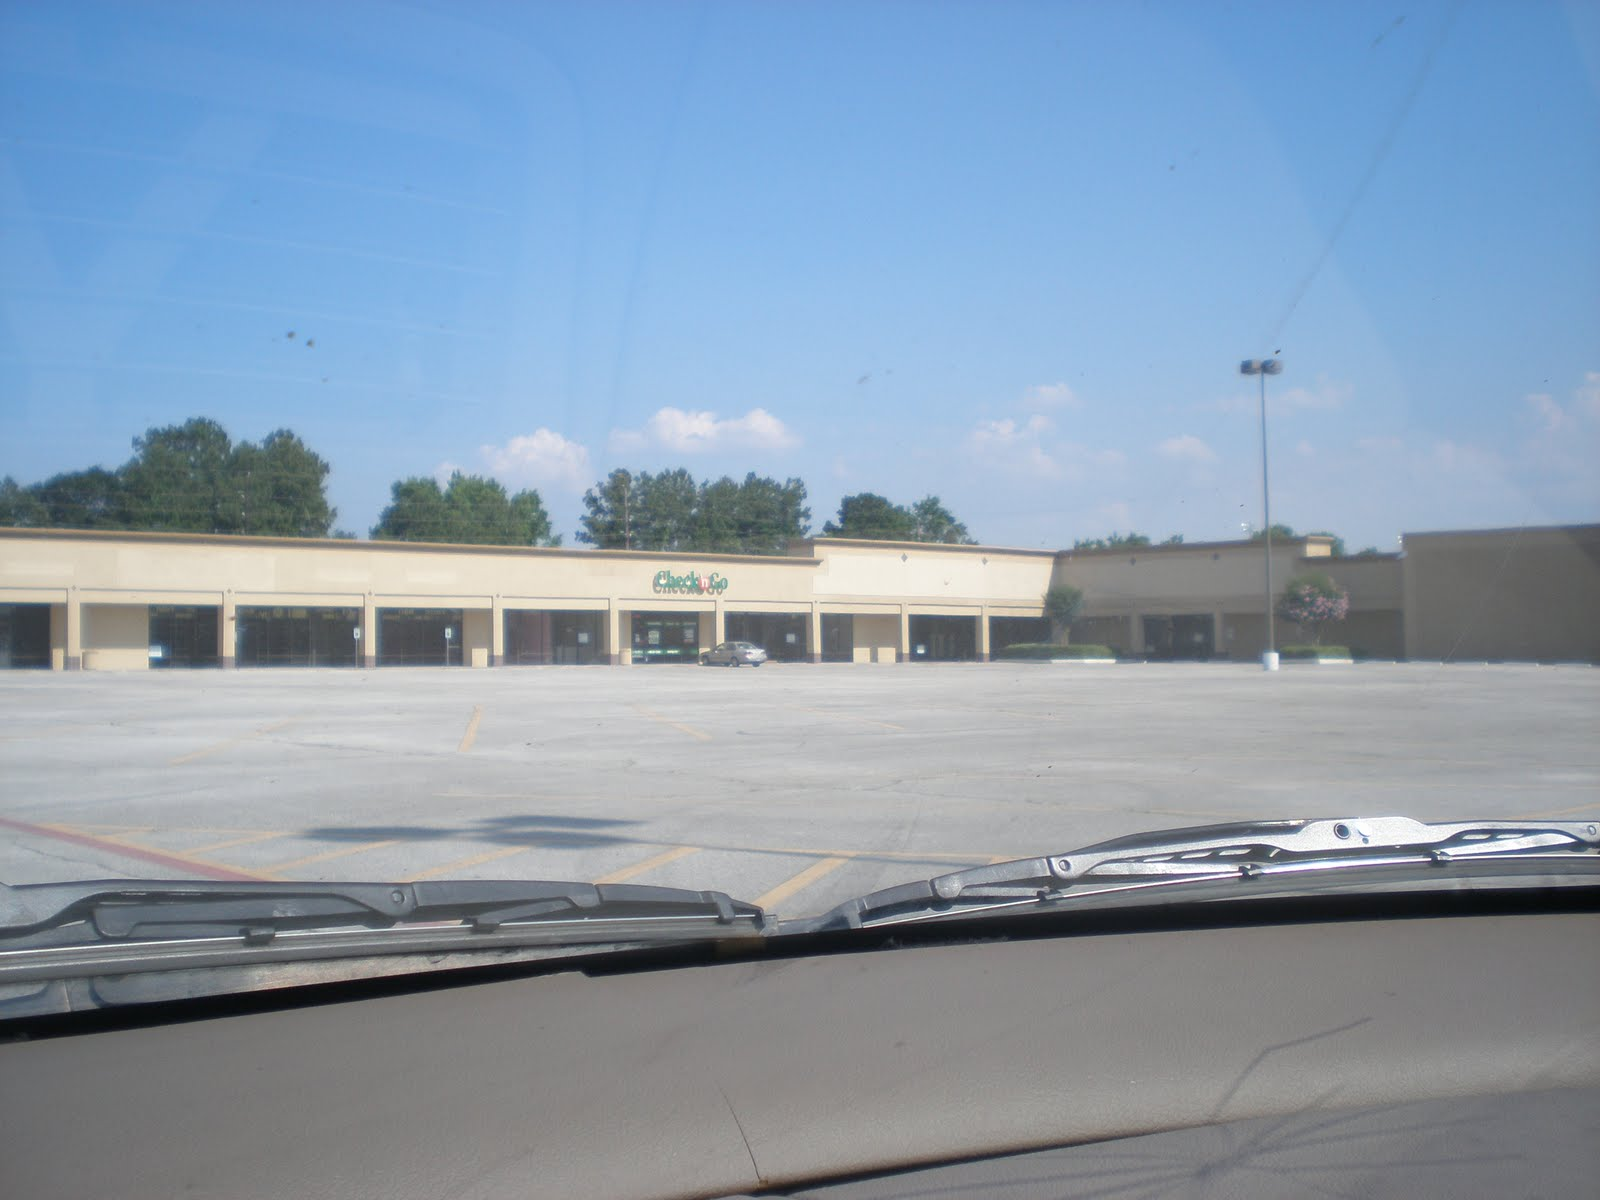 Furniture Stores In Bossier City La Louisiana and Texas Southern Malls and Retail: The retail district of ...